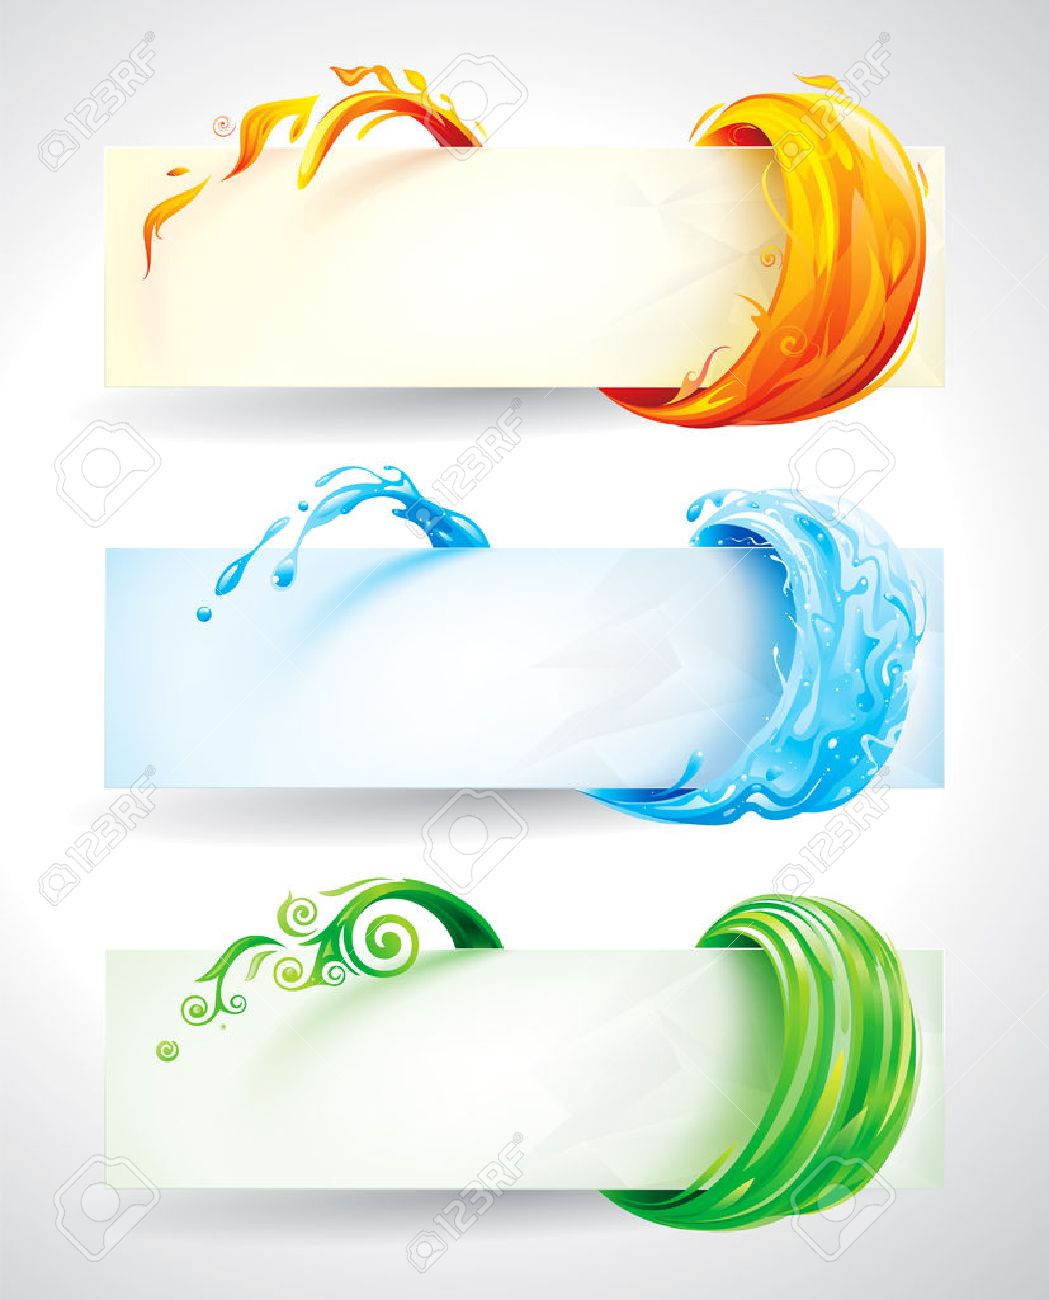 set of fire water and green elements banner background royalty